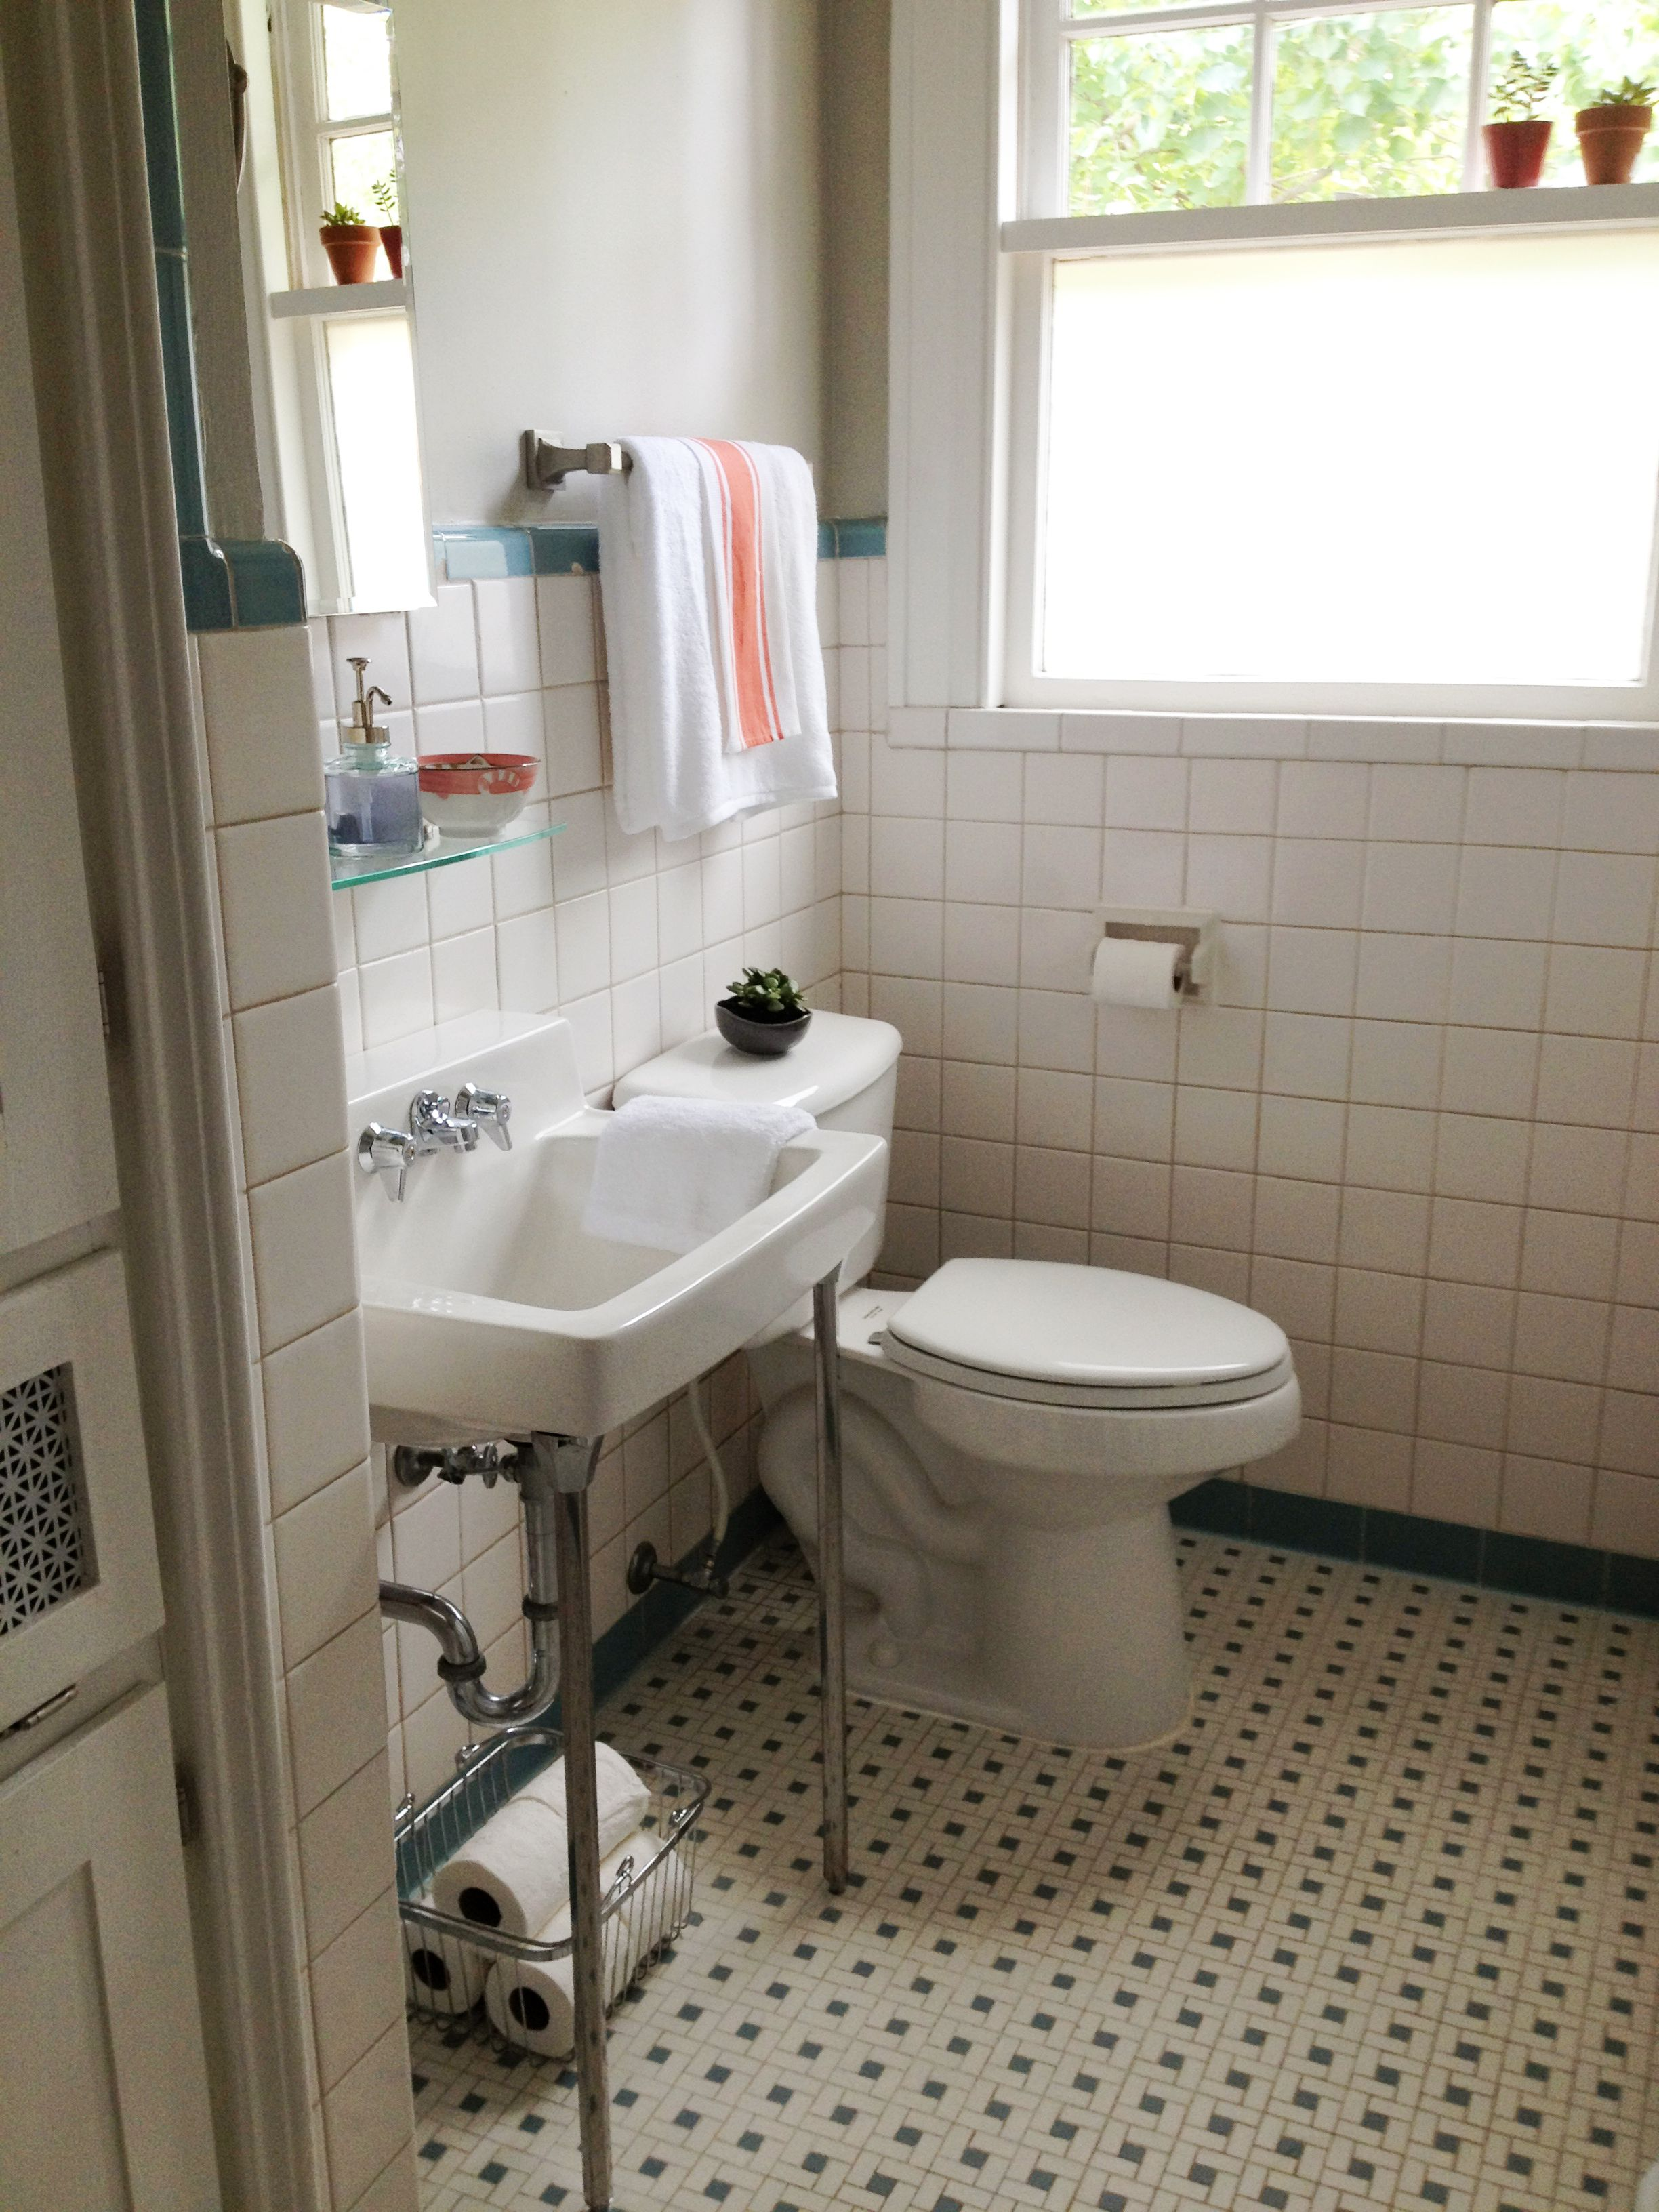 Small Retro Bathroom One Redo Finished One To Go Retro Bathrooms Dream Bathrooms Bathroom Redo